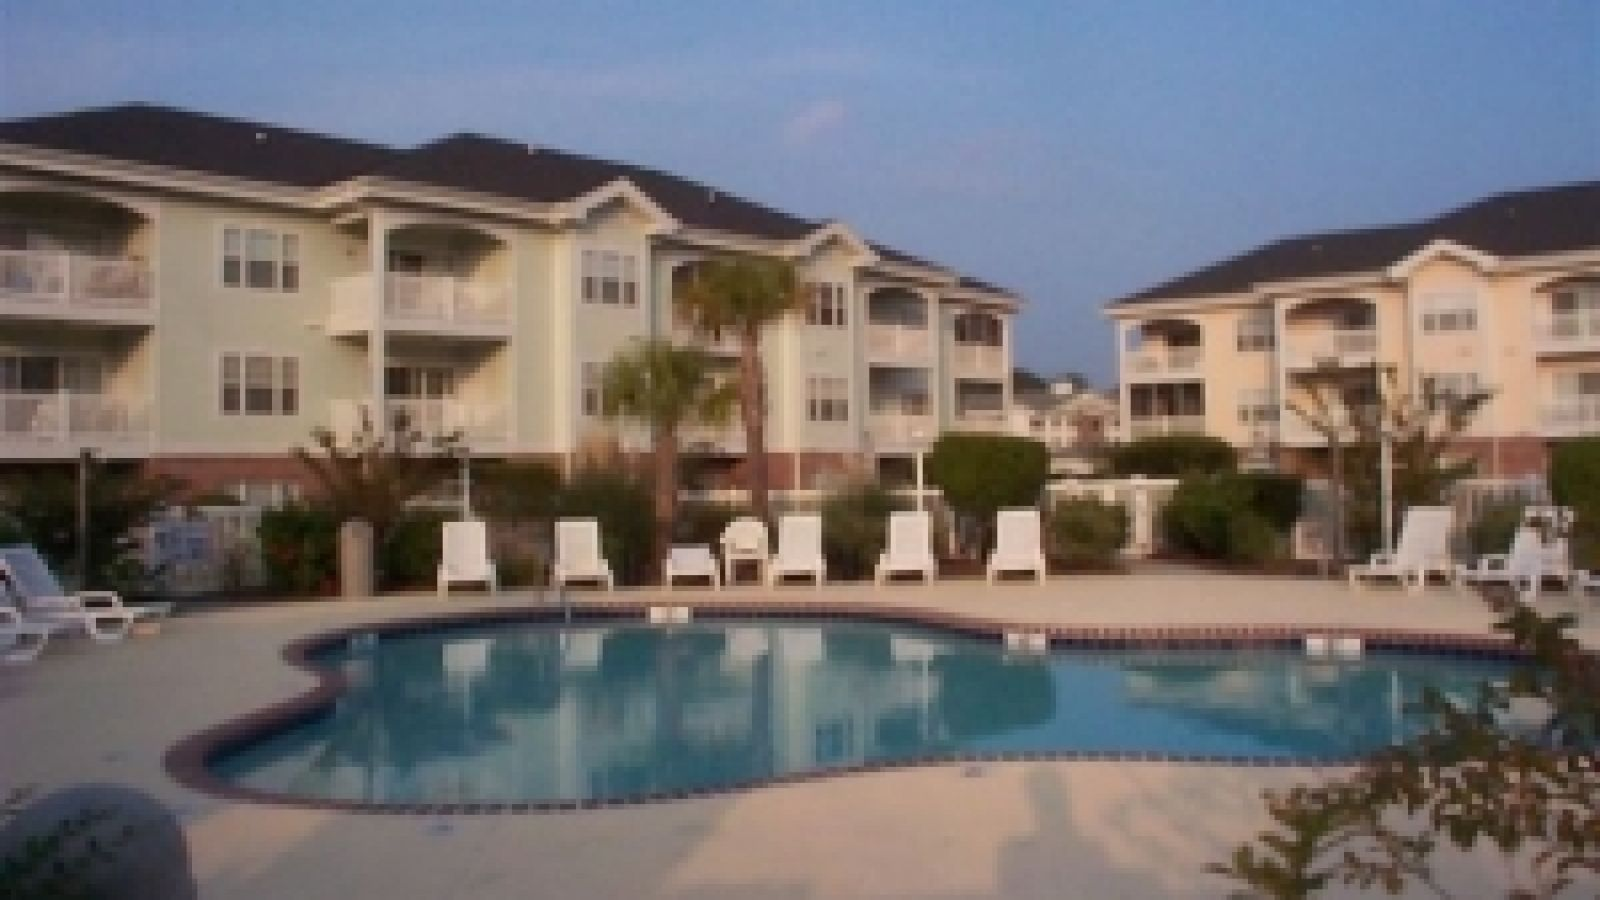 Myrtlewood Villas - Myrtle Beach golf packages